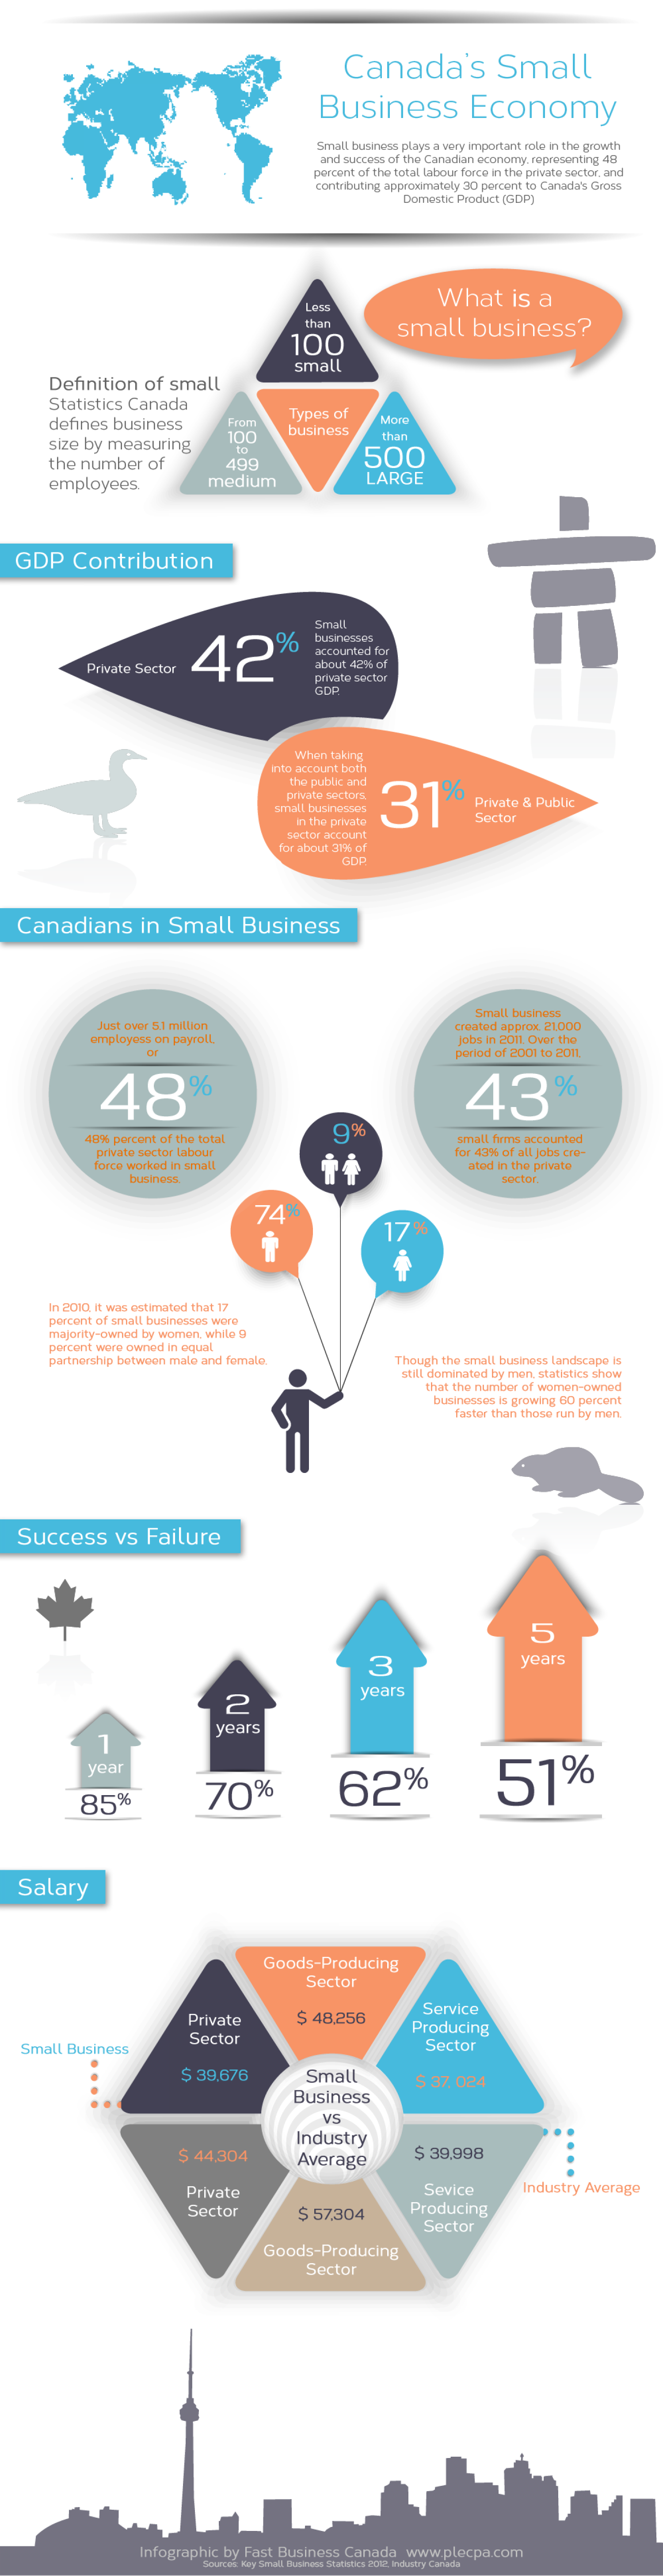 Canada's Small Business Economy Infographic